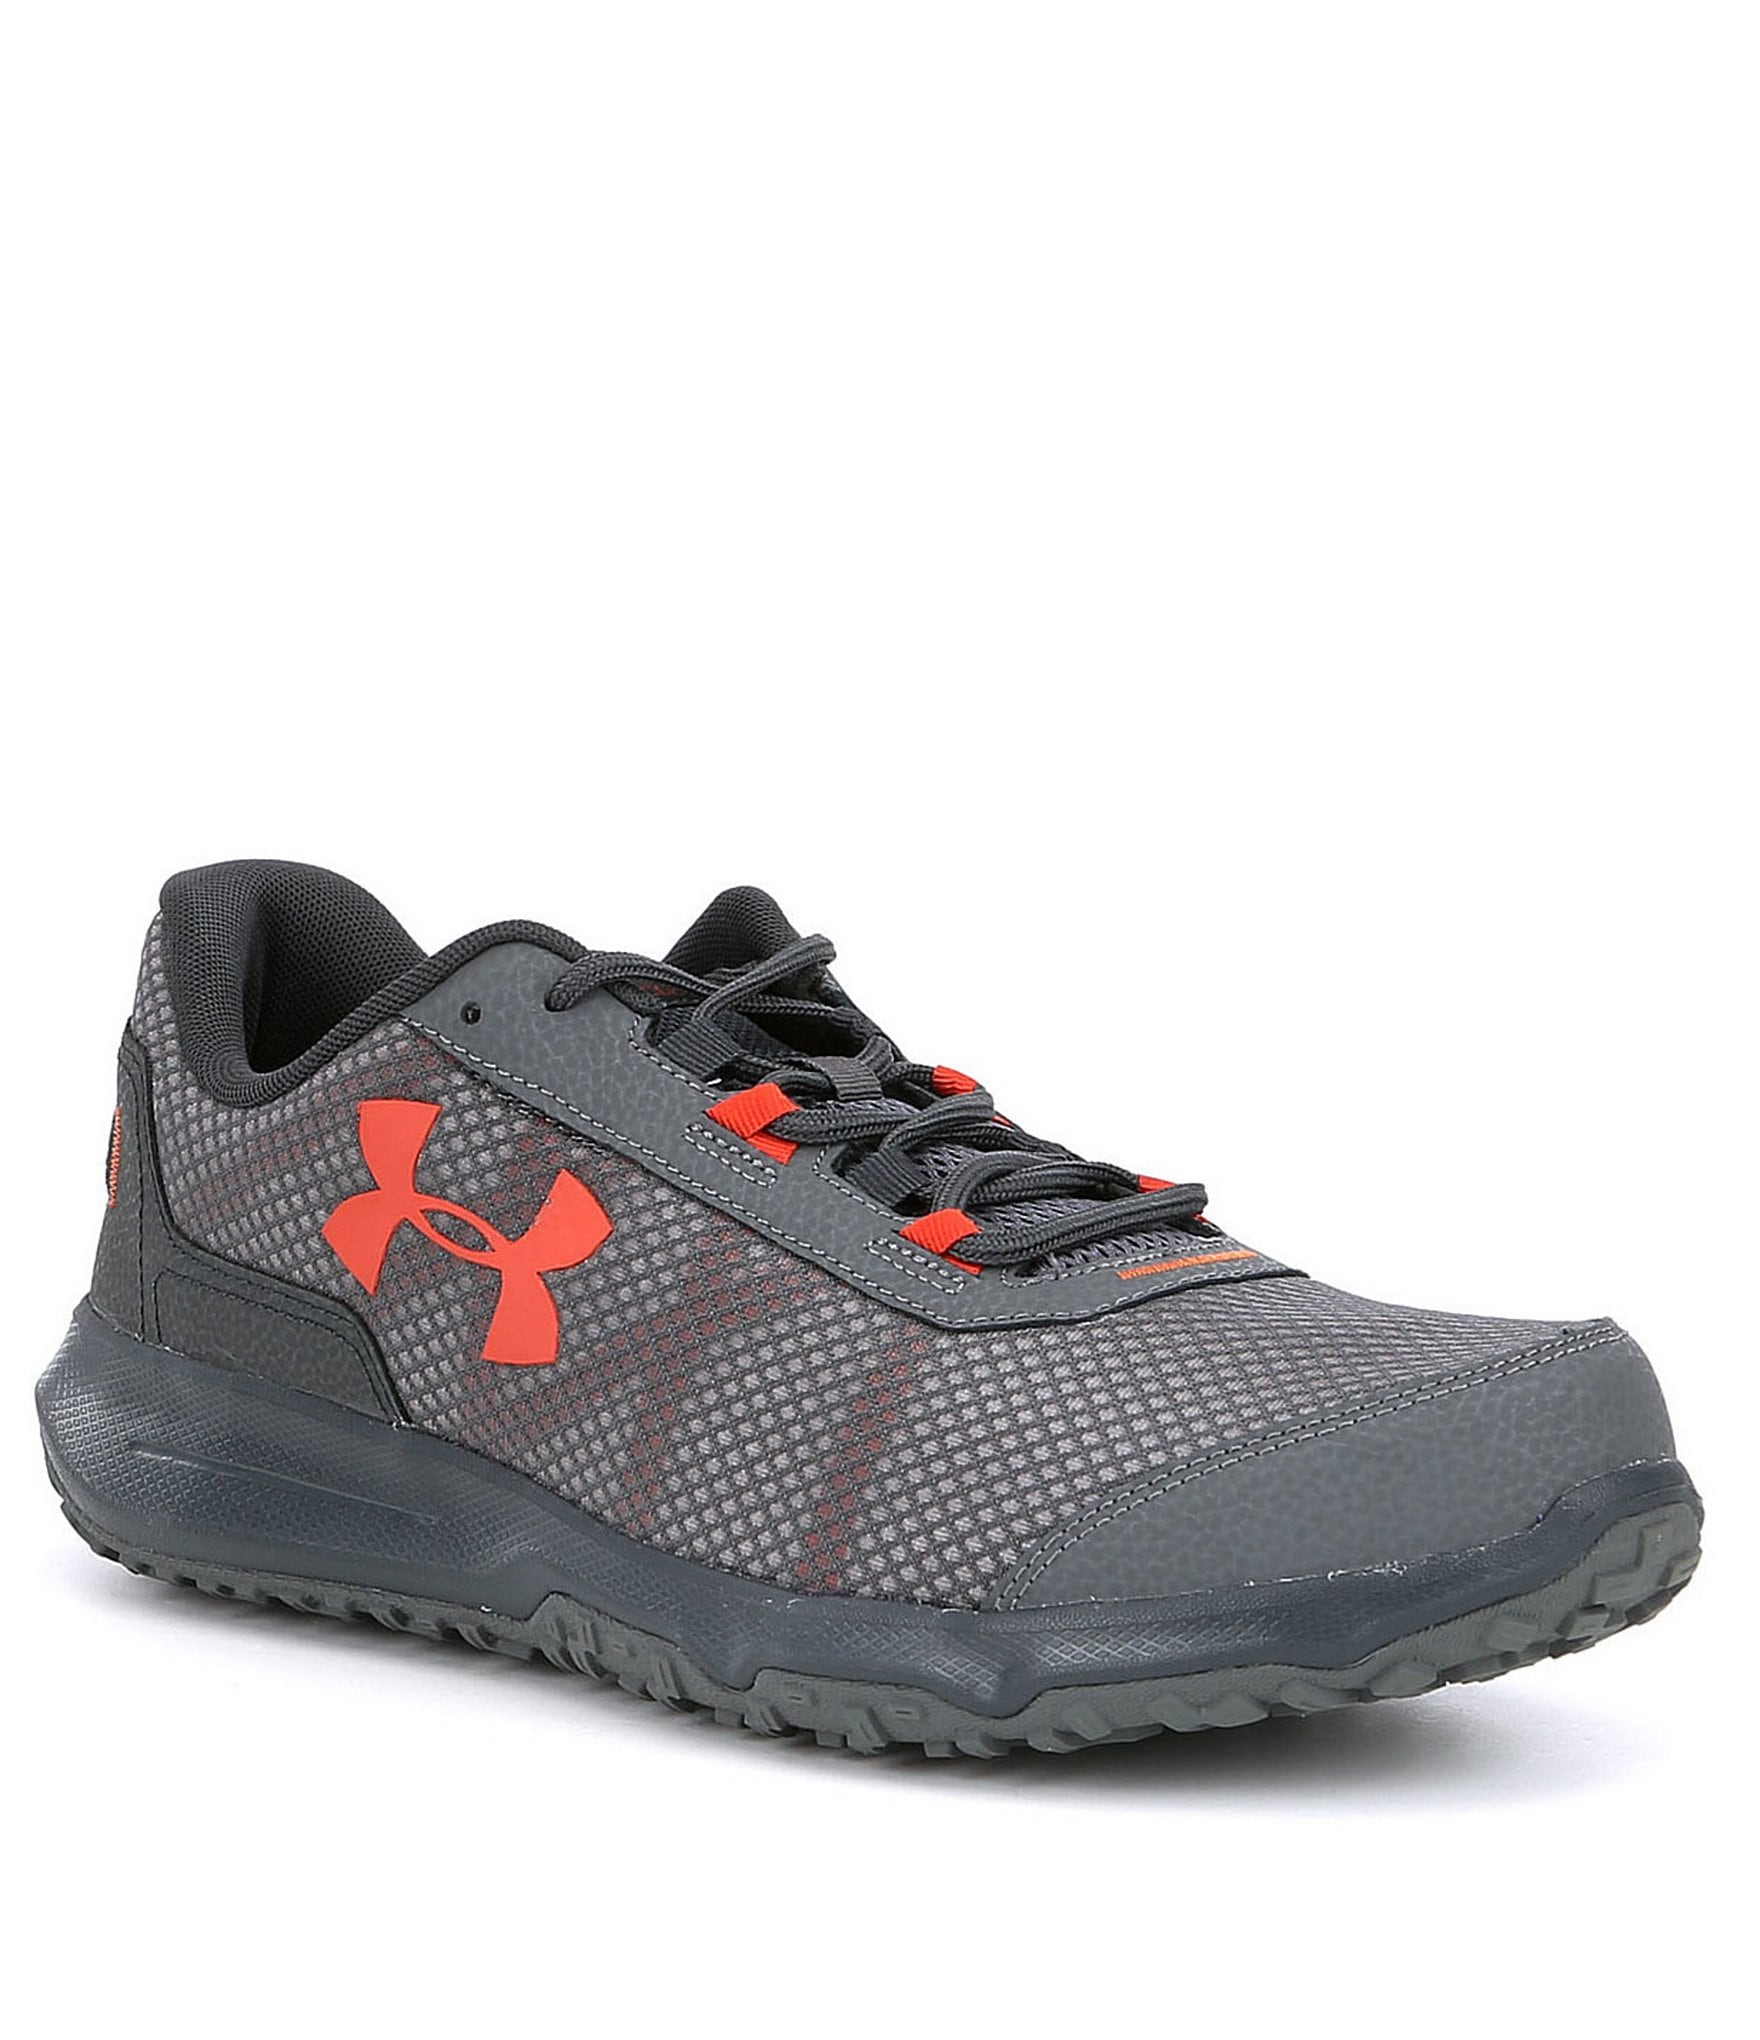 ... Shoes   Men's Shoes   Athletic   Dillards.com Boy's Nike Air Zoom  Pegasus All Out Flyknit Running ...